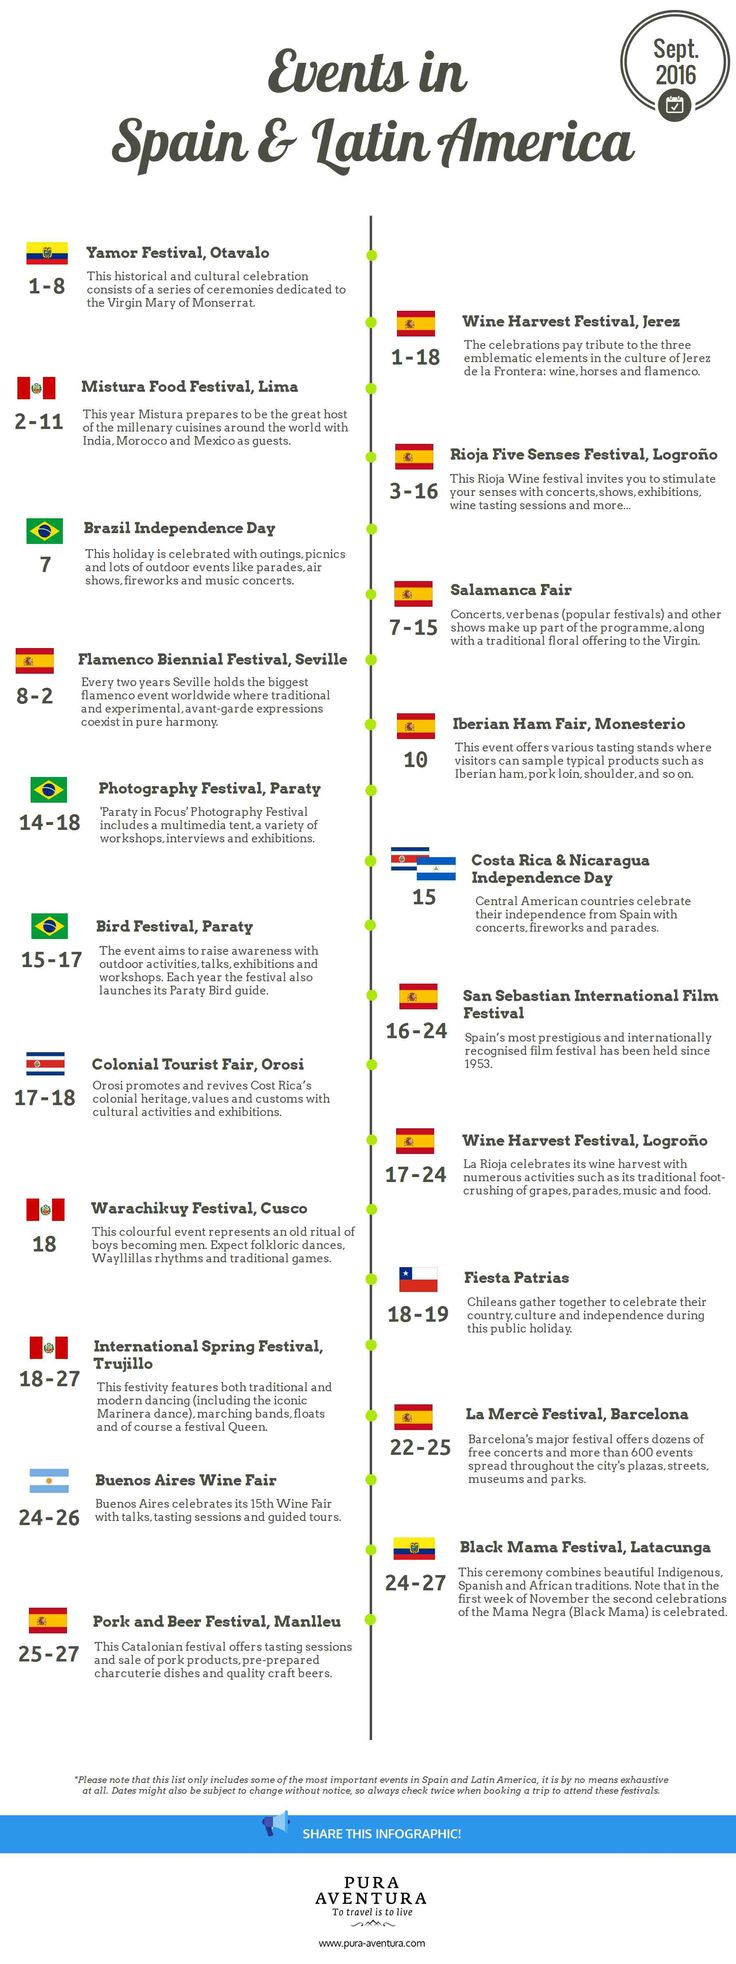 Events in Spain and Latin America, September 2016 - Read more: https://www.pura-aventura.com/blog/events-in-spain-and-latin-america-september-2016/